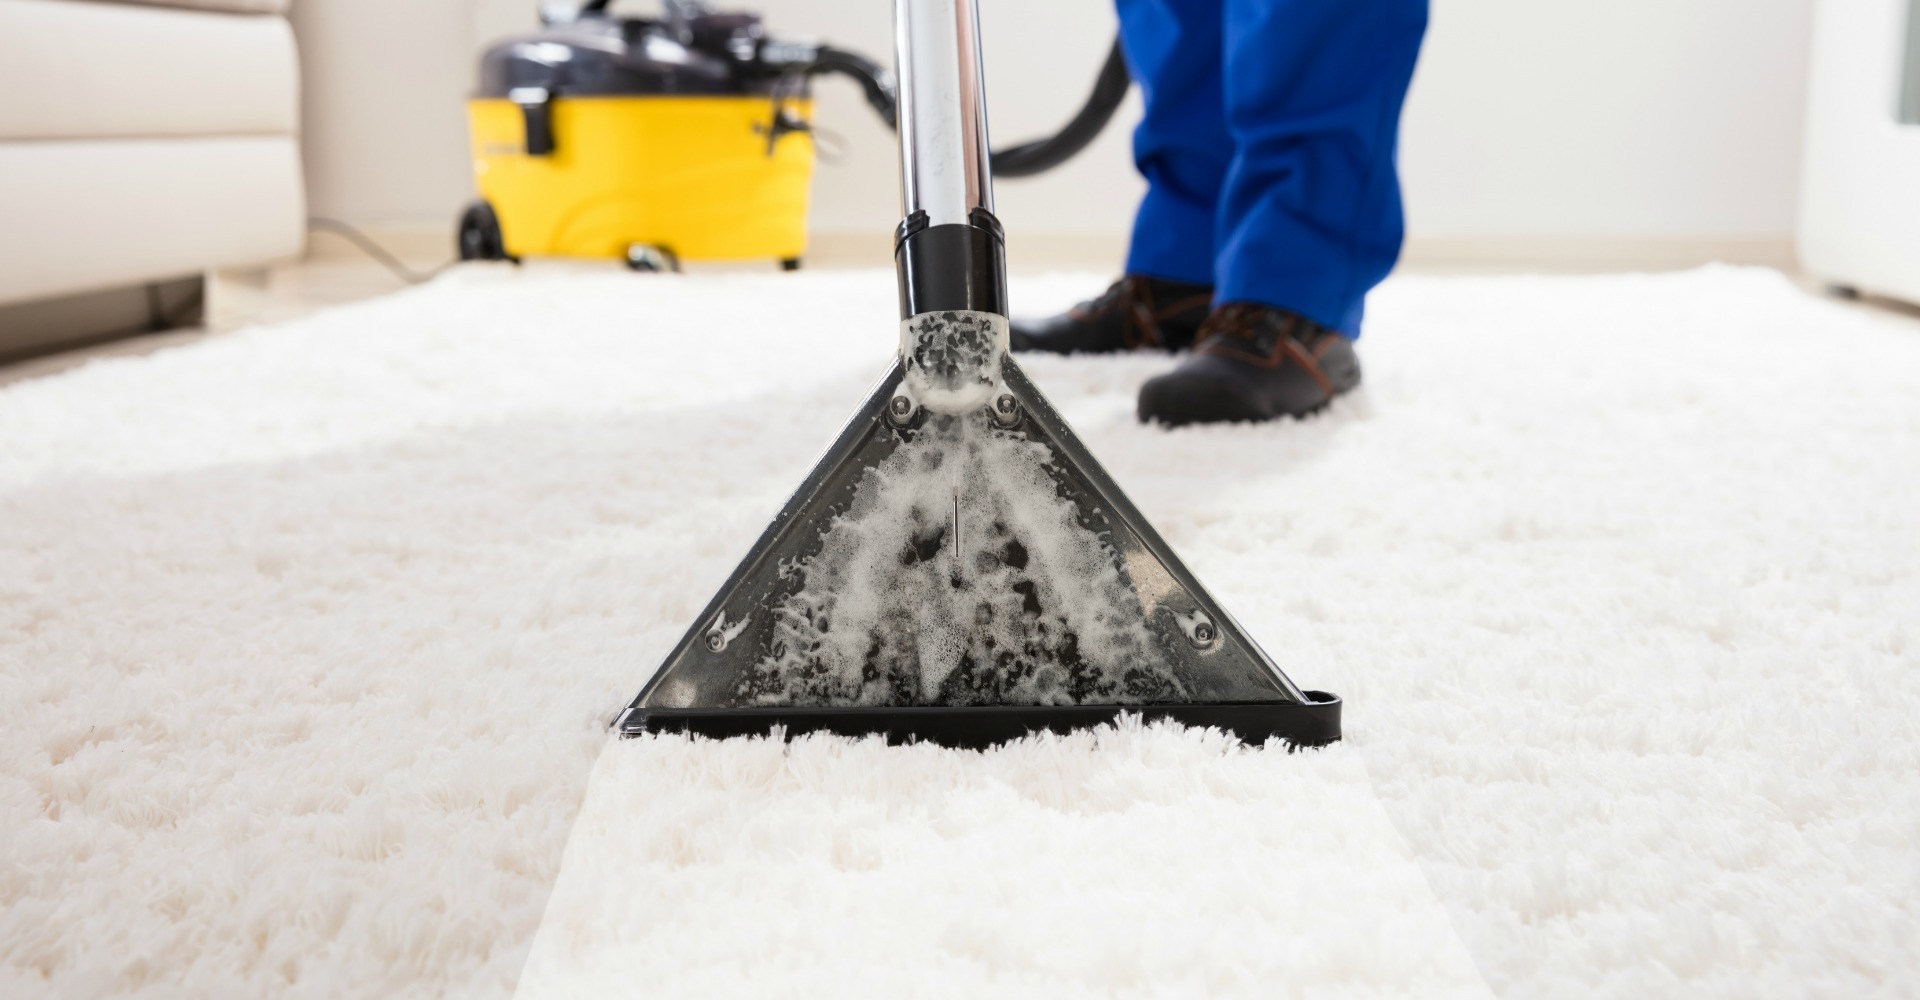 Carpet cleaning techniques professionals use